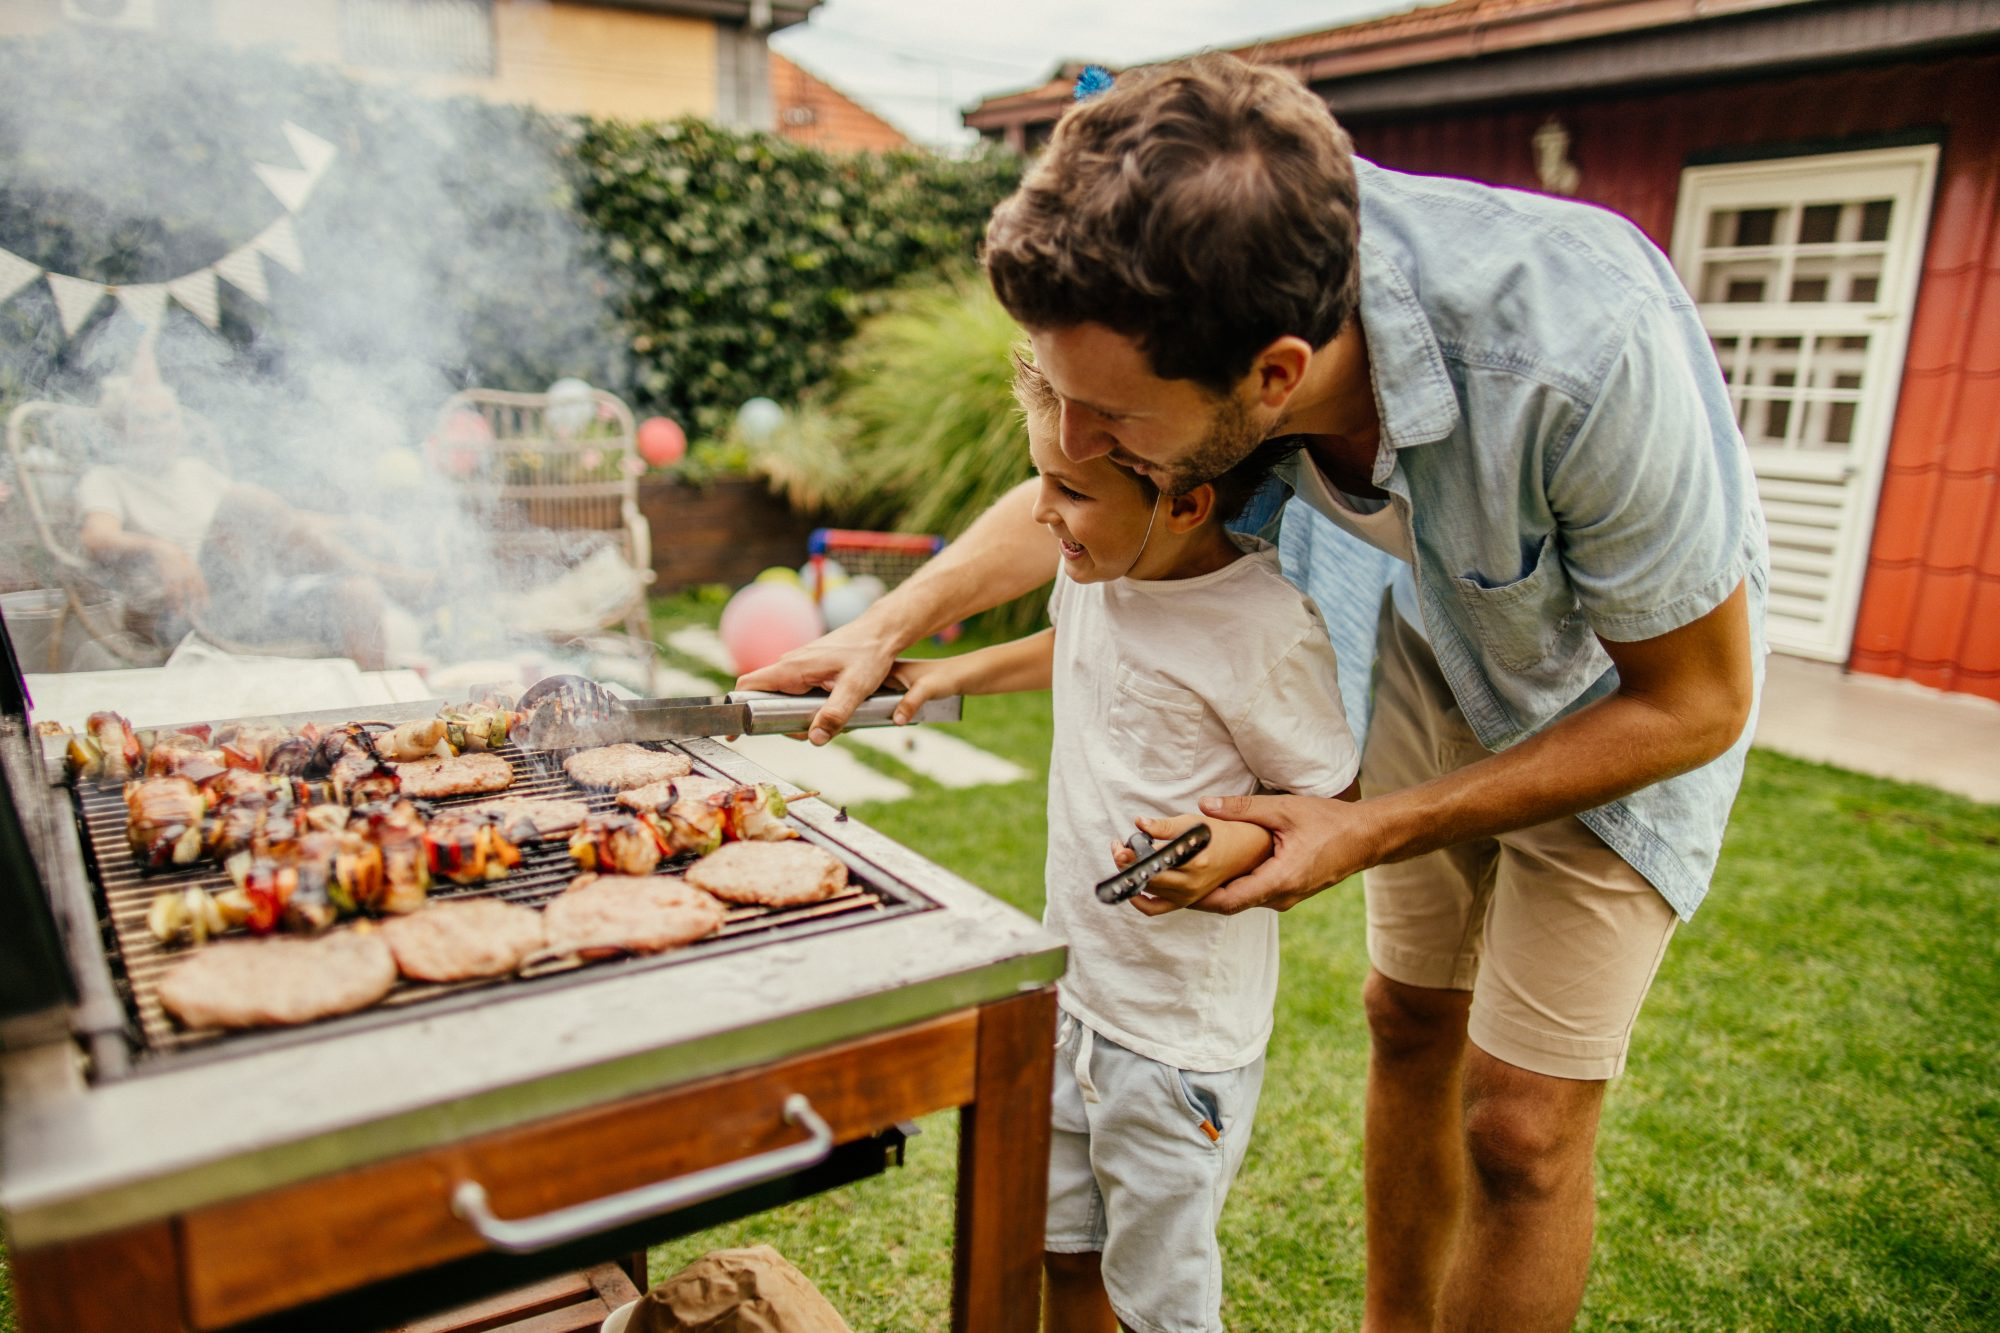 Grilling meat with dad and son